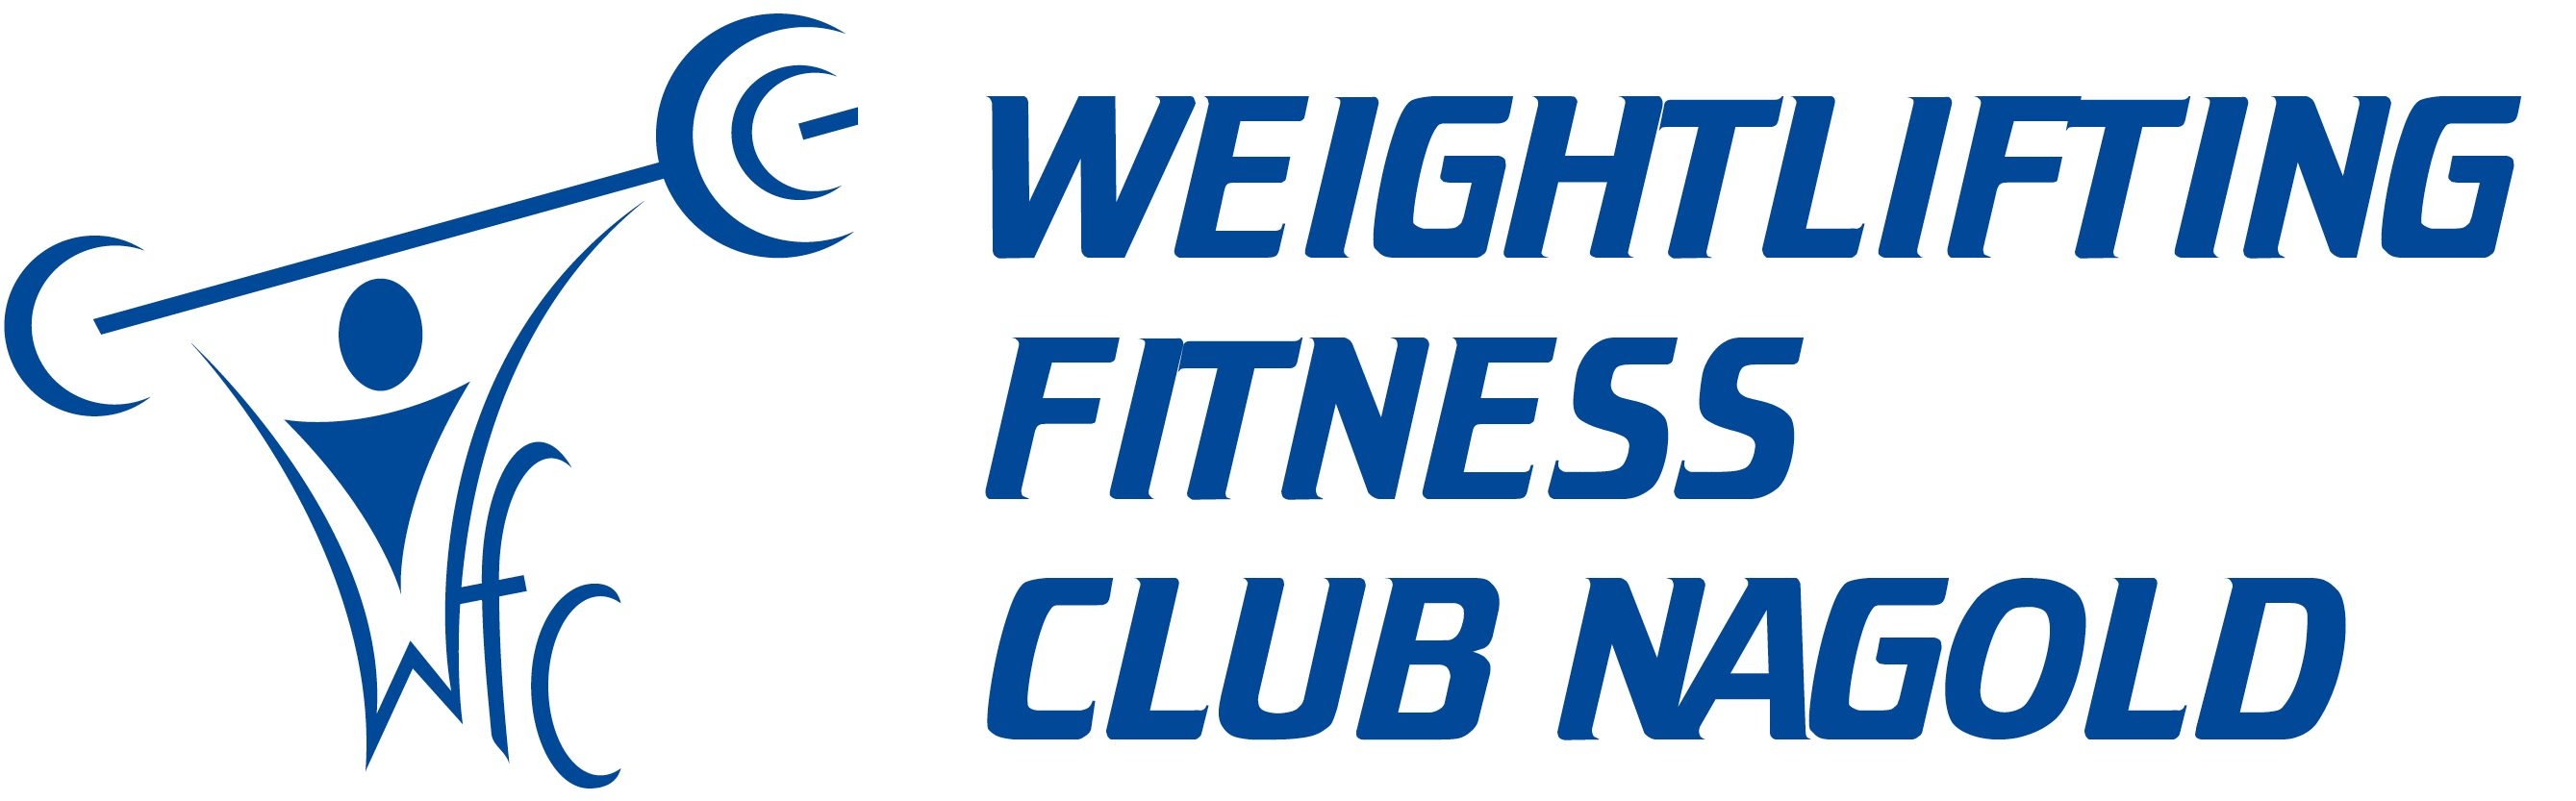 Weightlifting & Fitnessclub